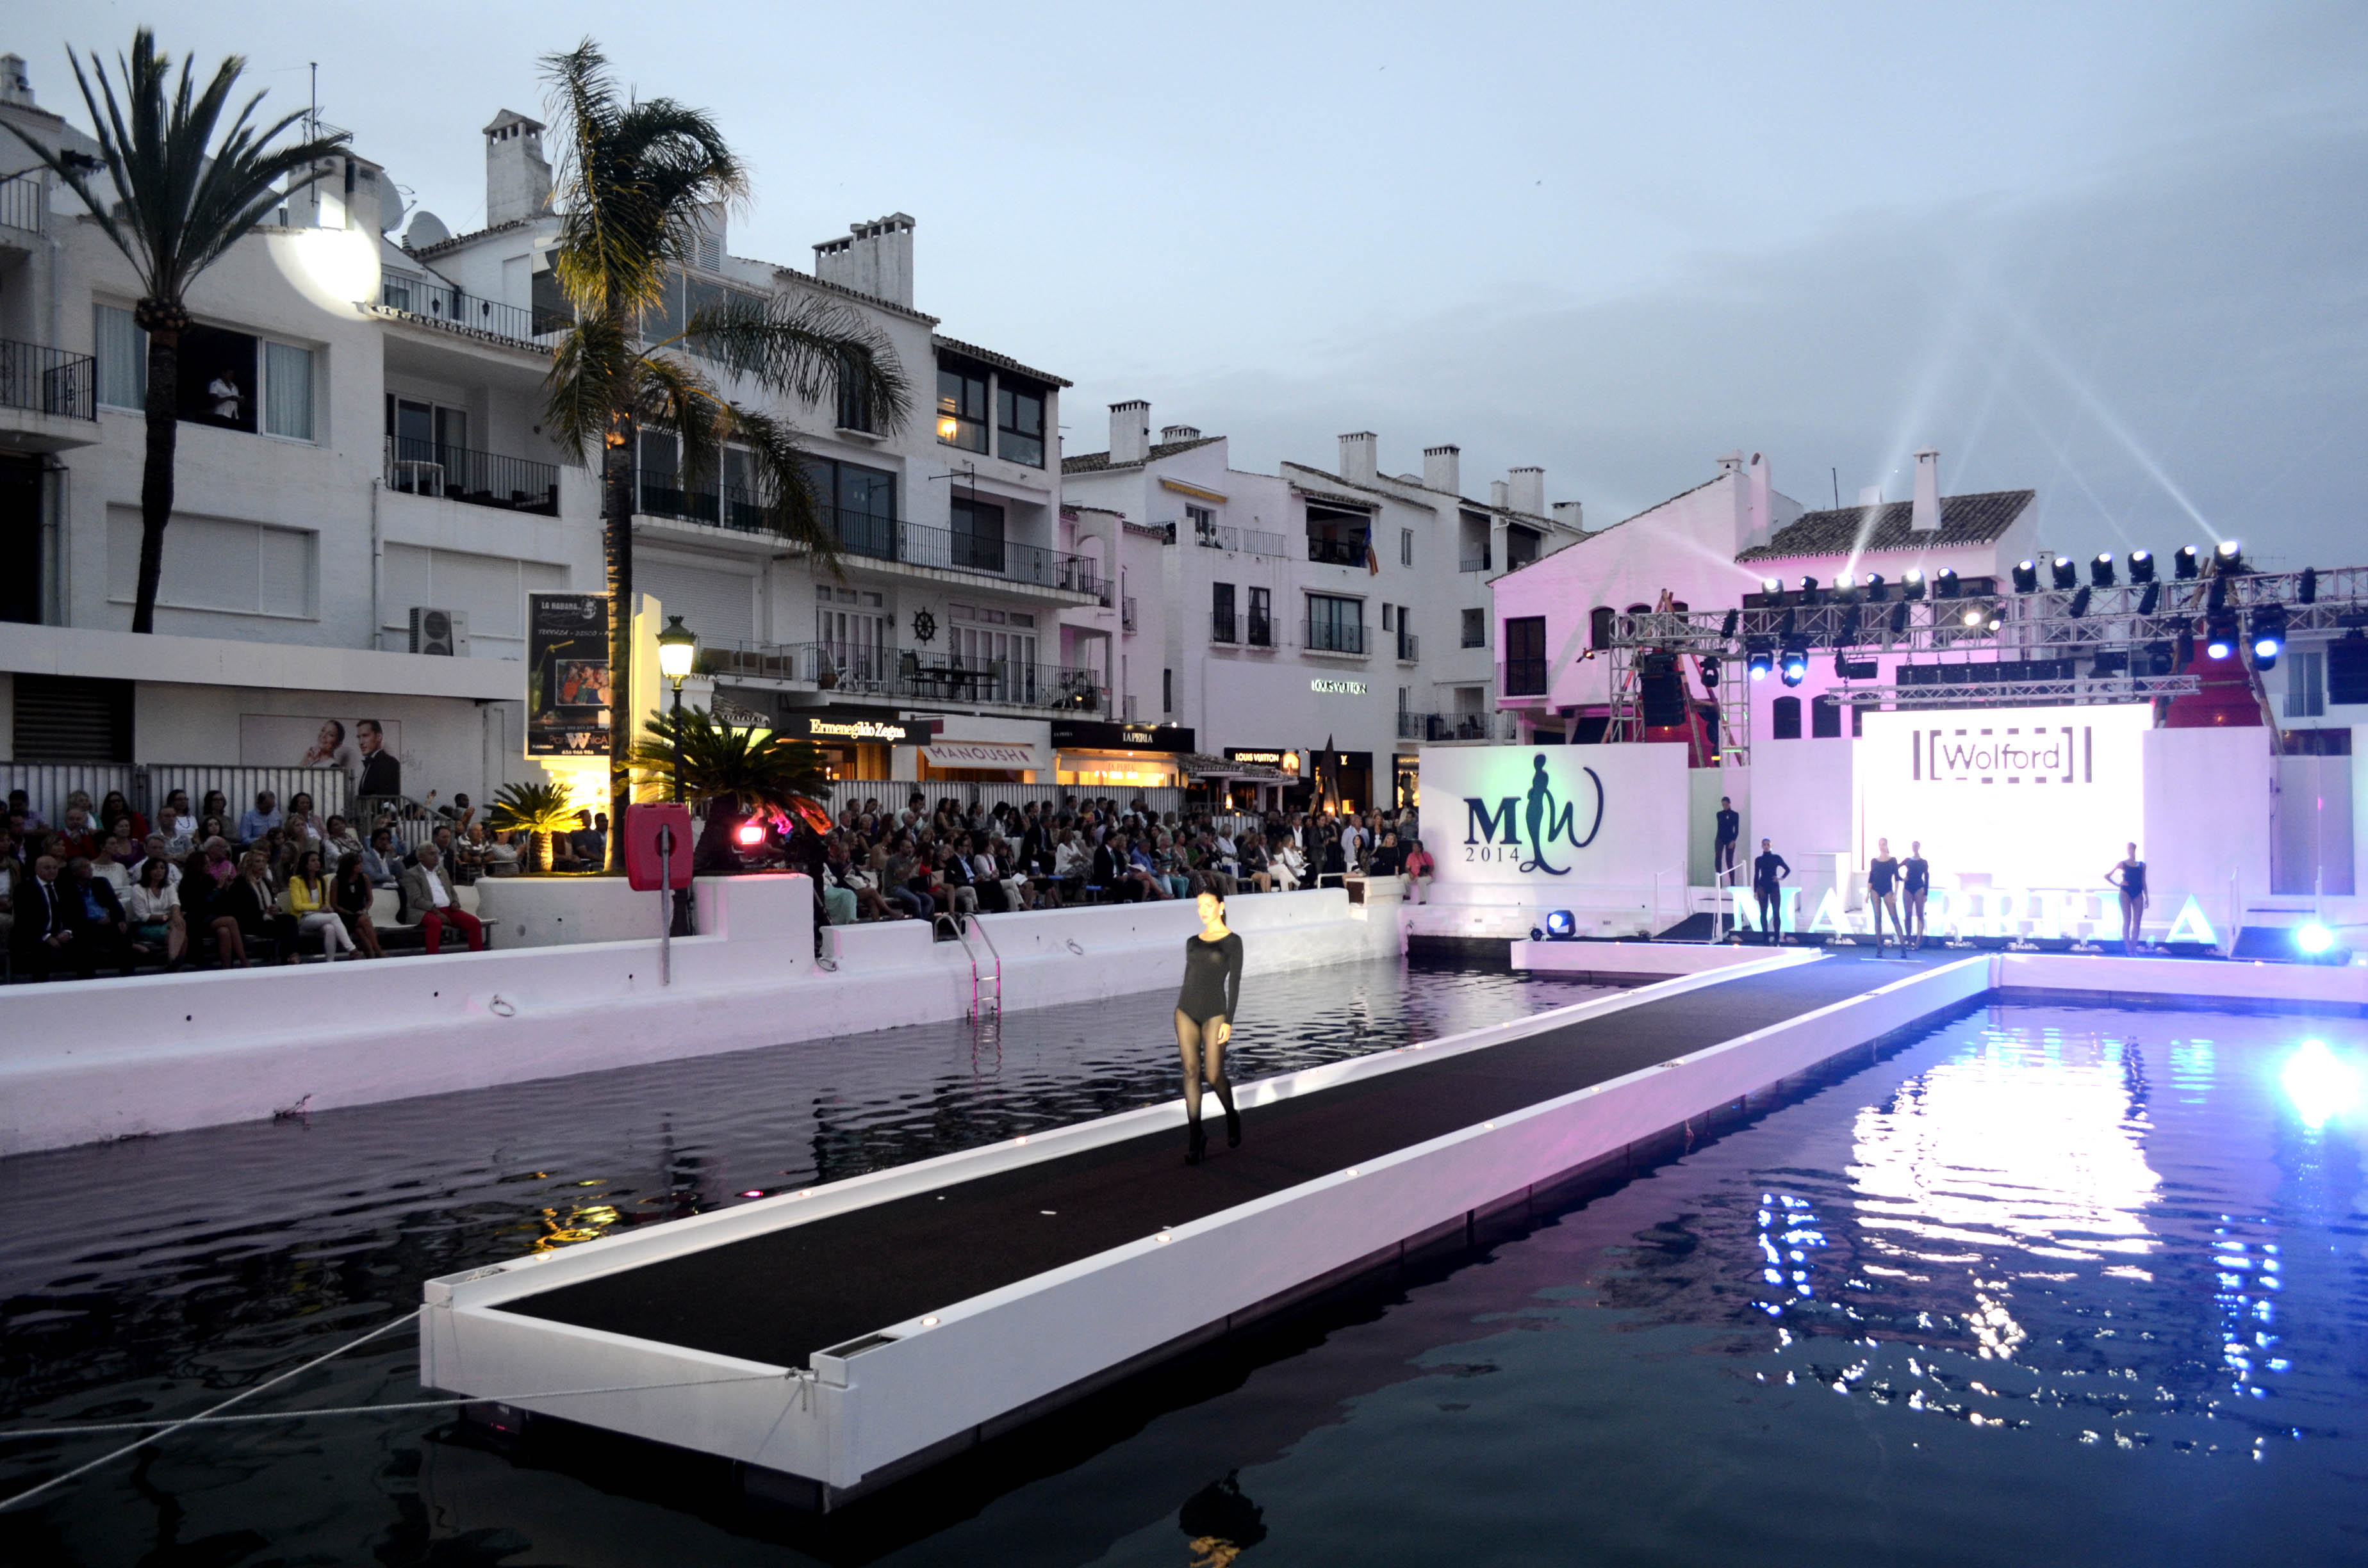 Marbella Luxury Weekend aims to follow in the footsteps of the Cannes Film Festival